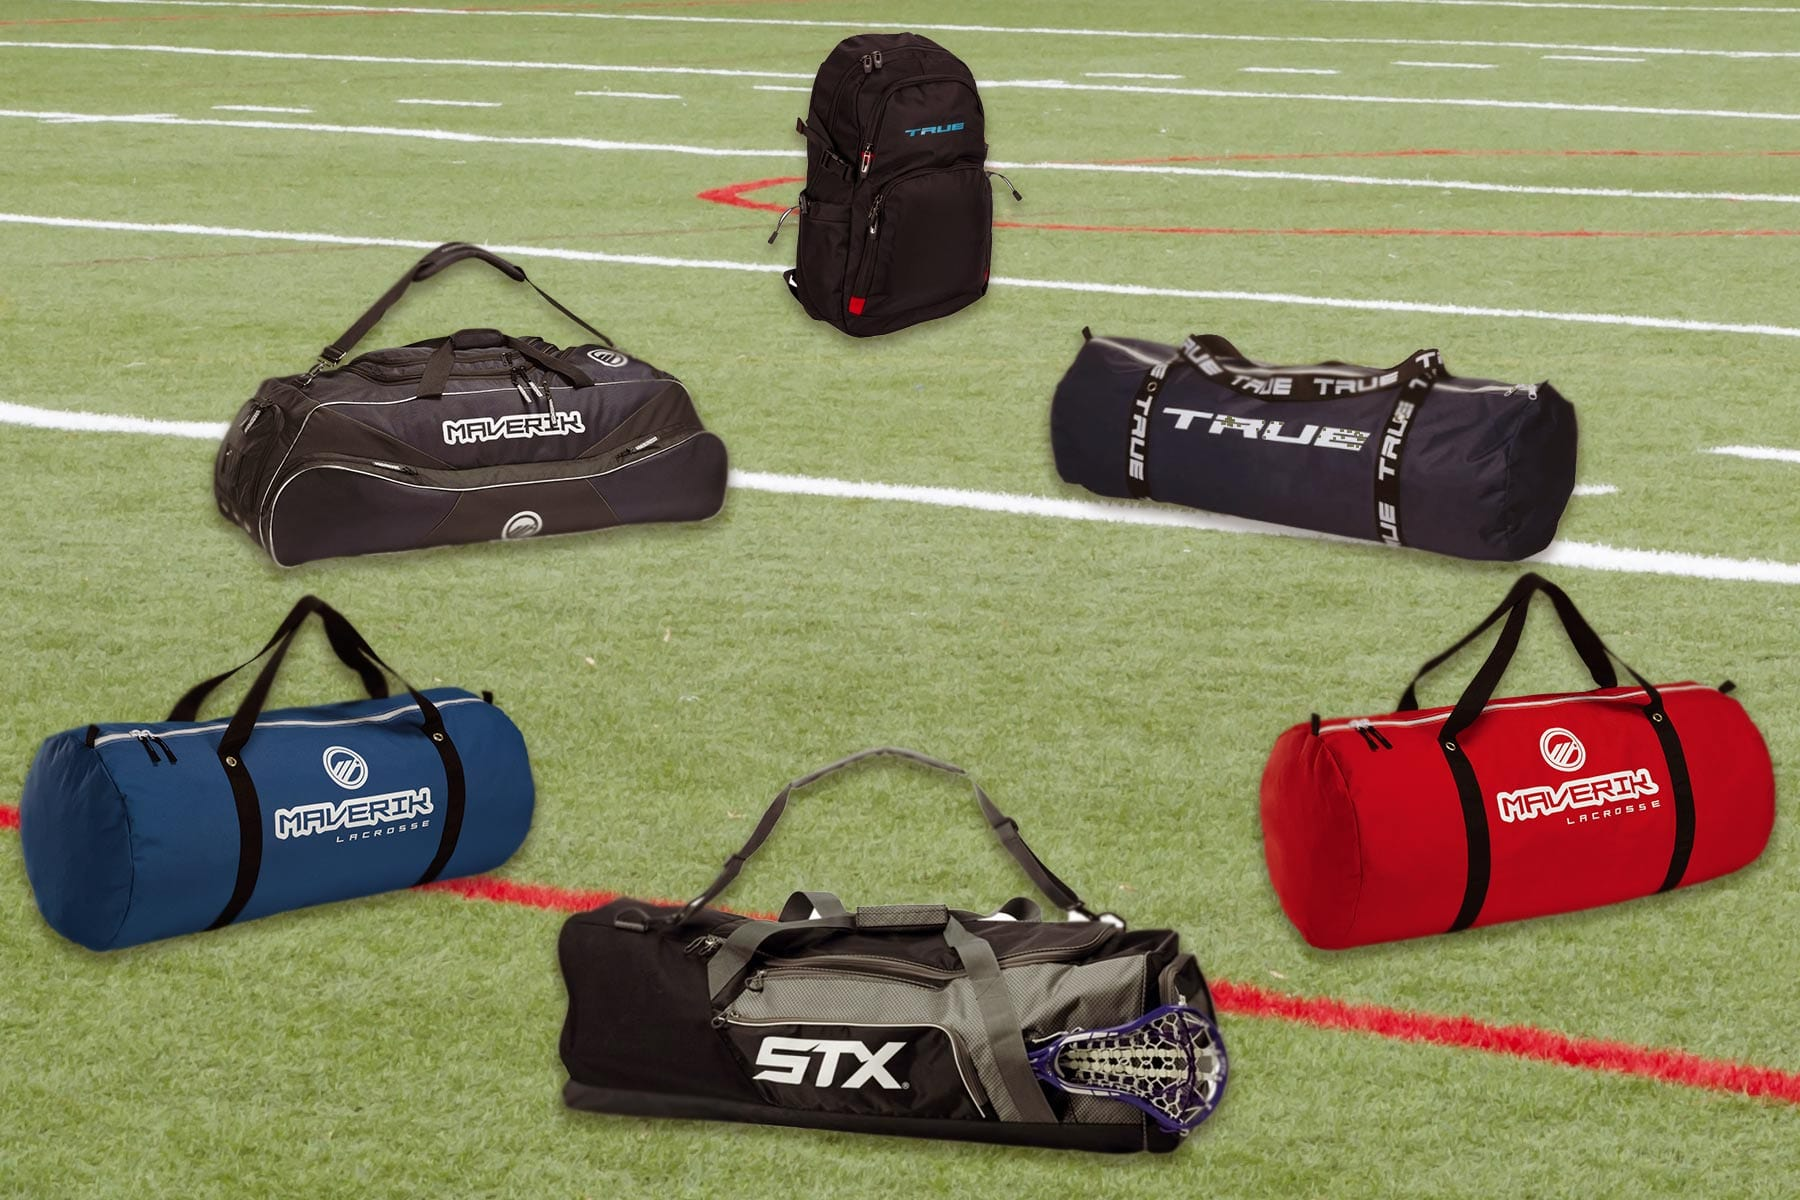 Equipment bags for the whole team from Lacrosse Fanatic